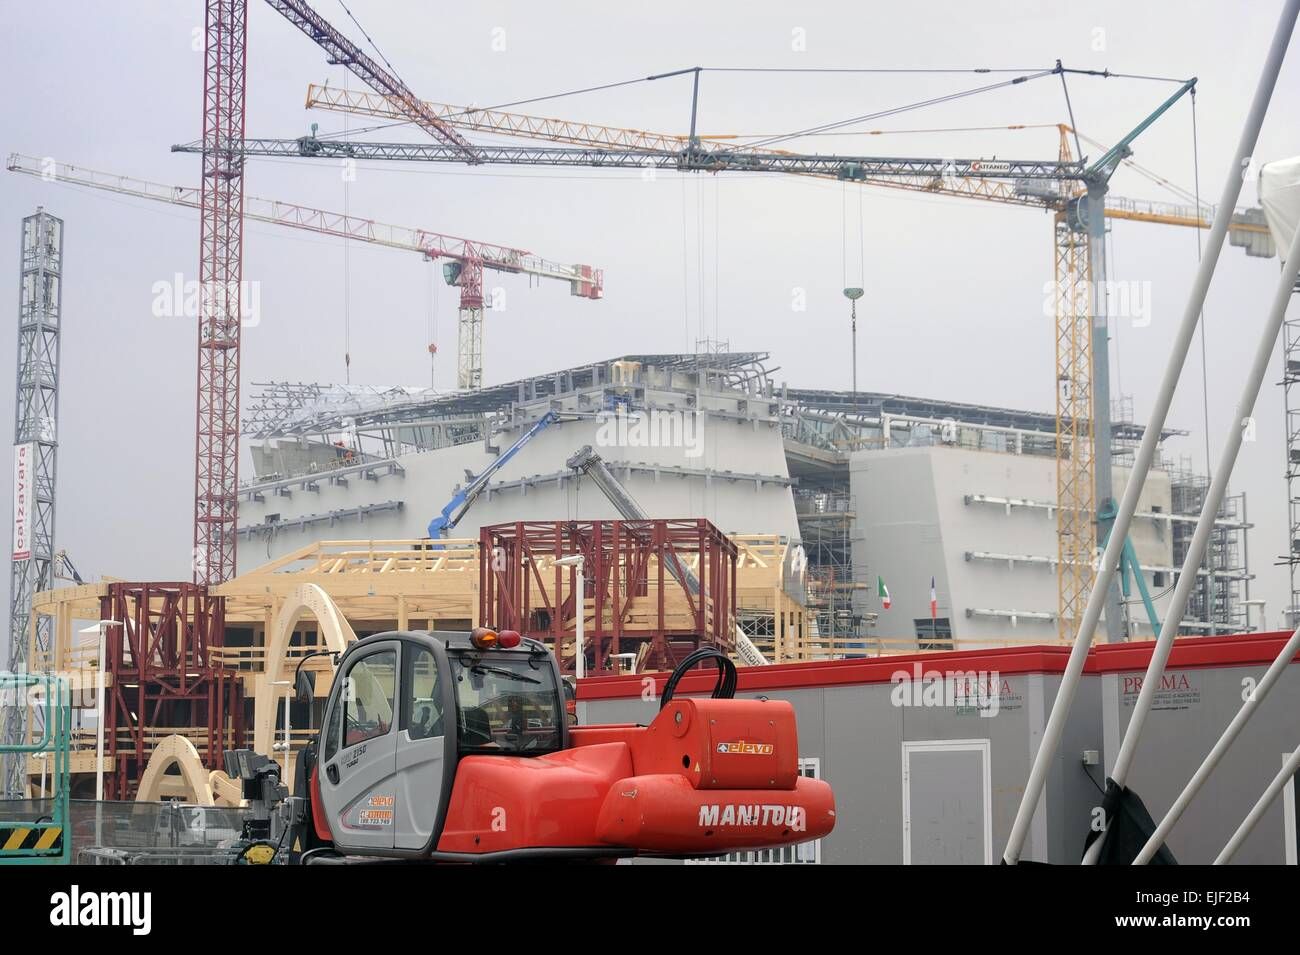 Milan (Italy), construction site for the World Exhibition Expo 2015 - Stock Image